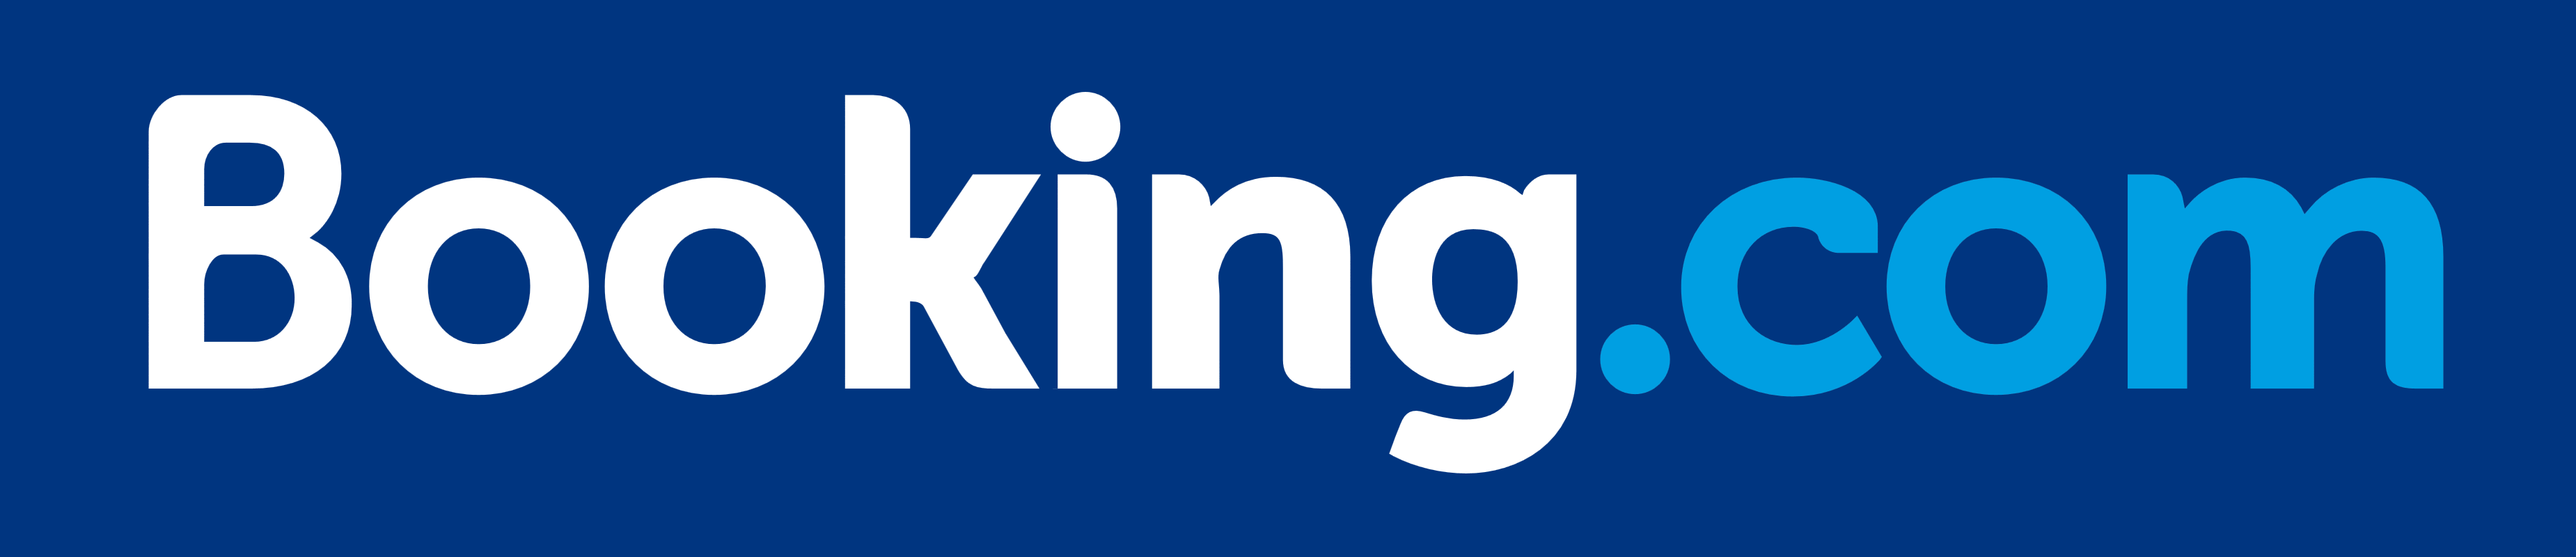 Image result for booking.com logo image